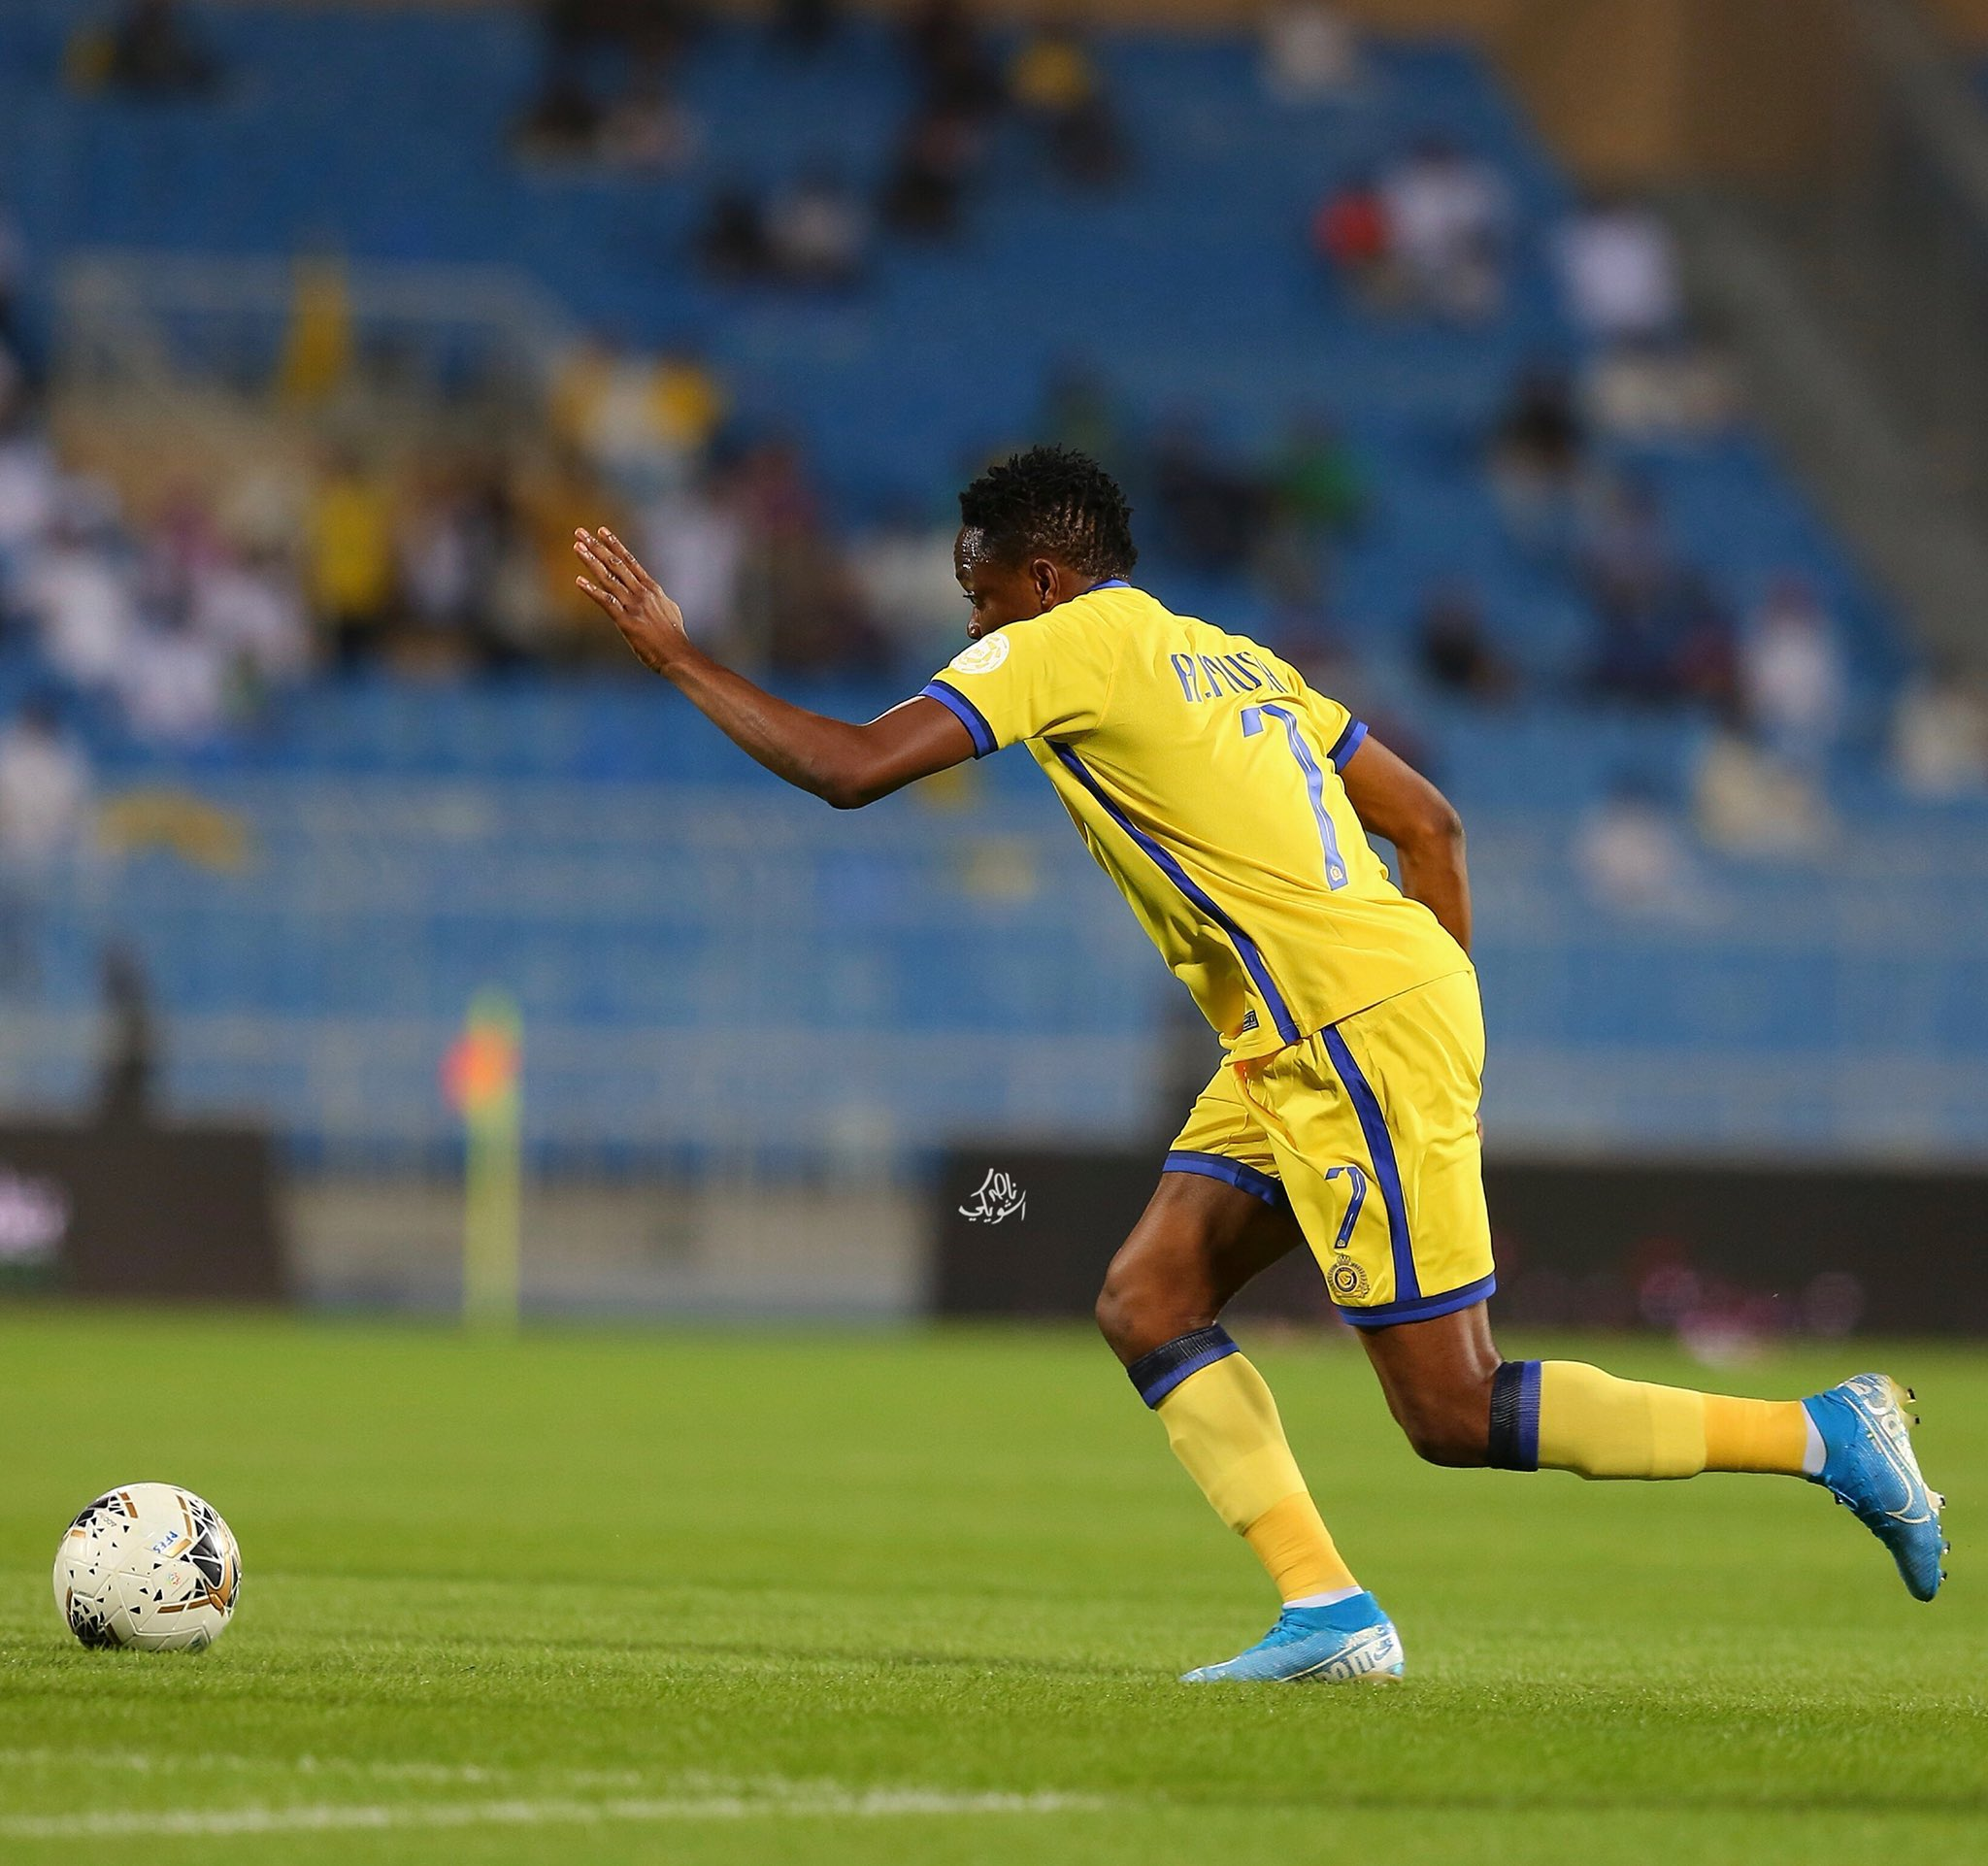 Musa Thrilled To Return For Al Nassr After Injury Layoff